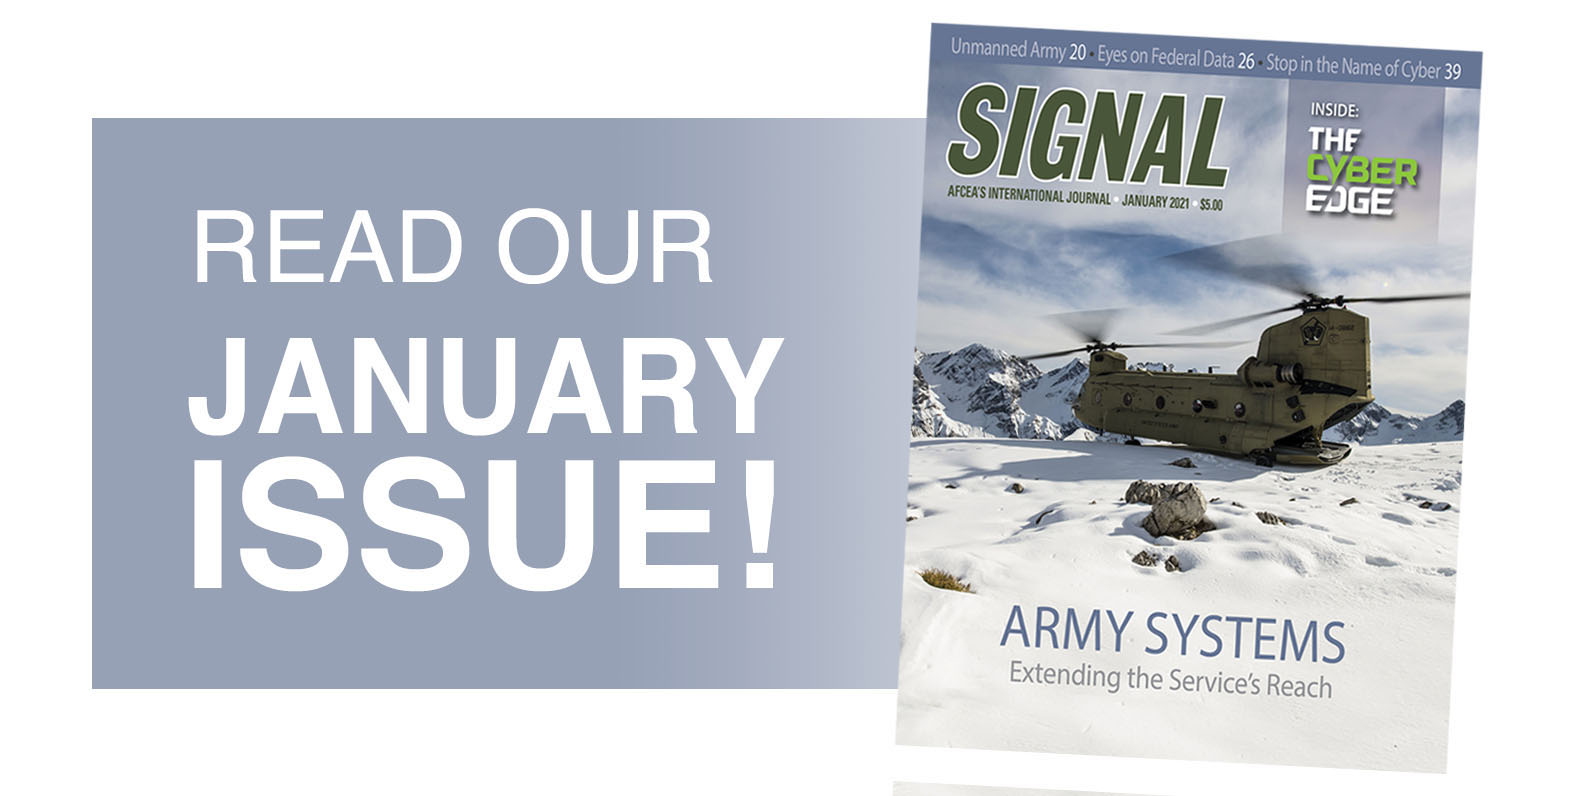 SIGNAL December Issue